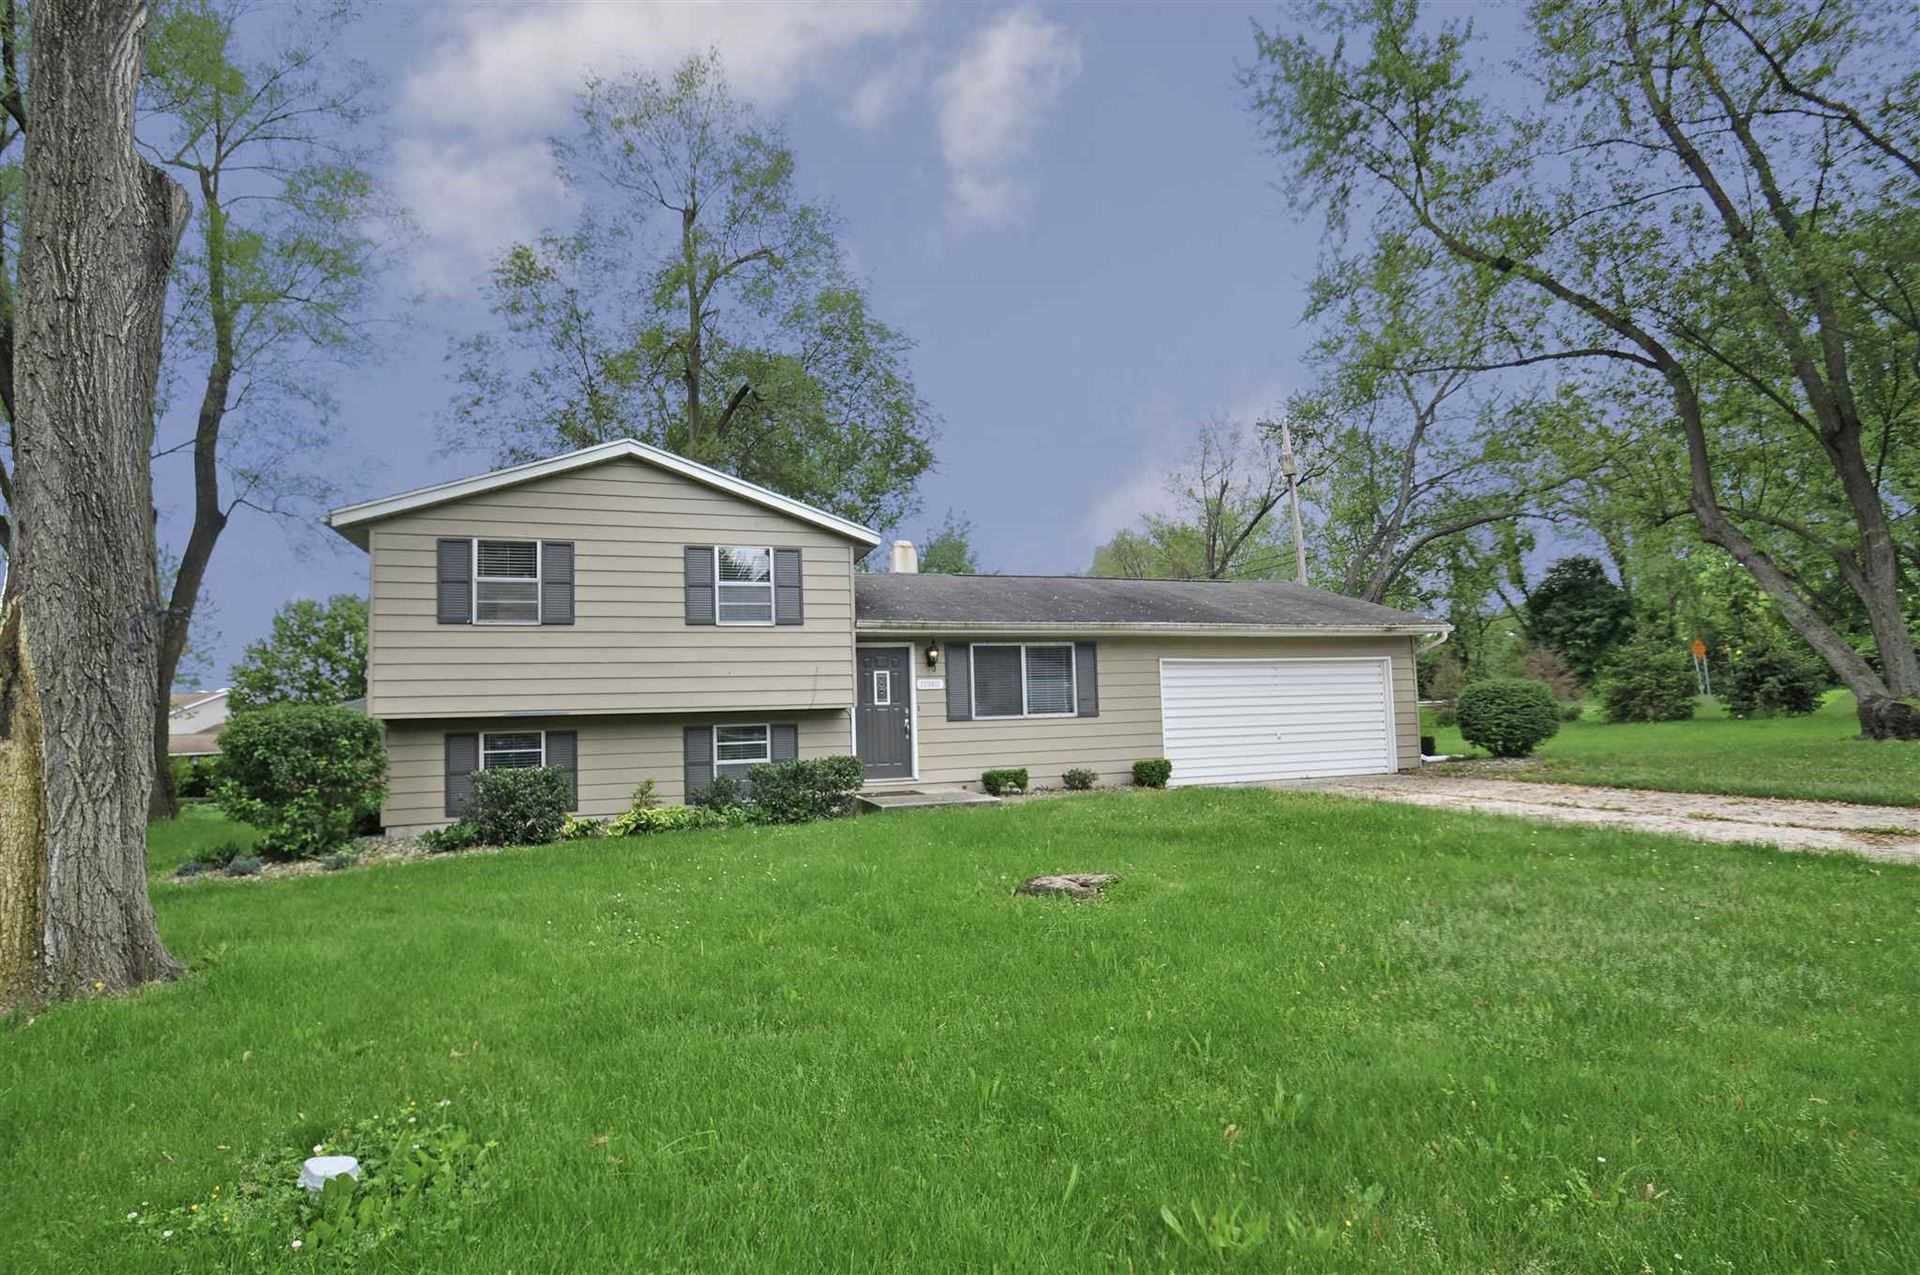 17980 Tollview Drive, South Bend, IN 46635 - #: 202020107